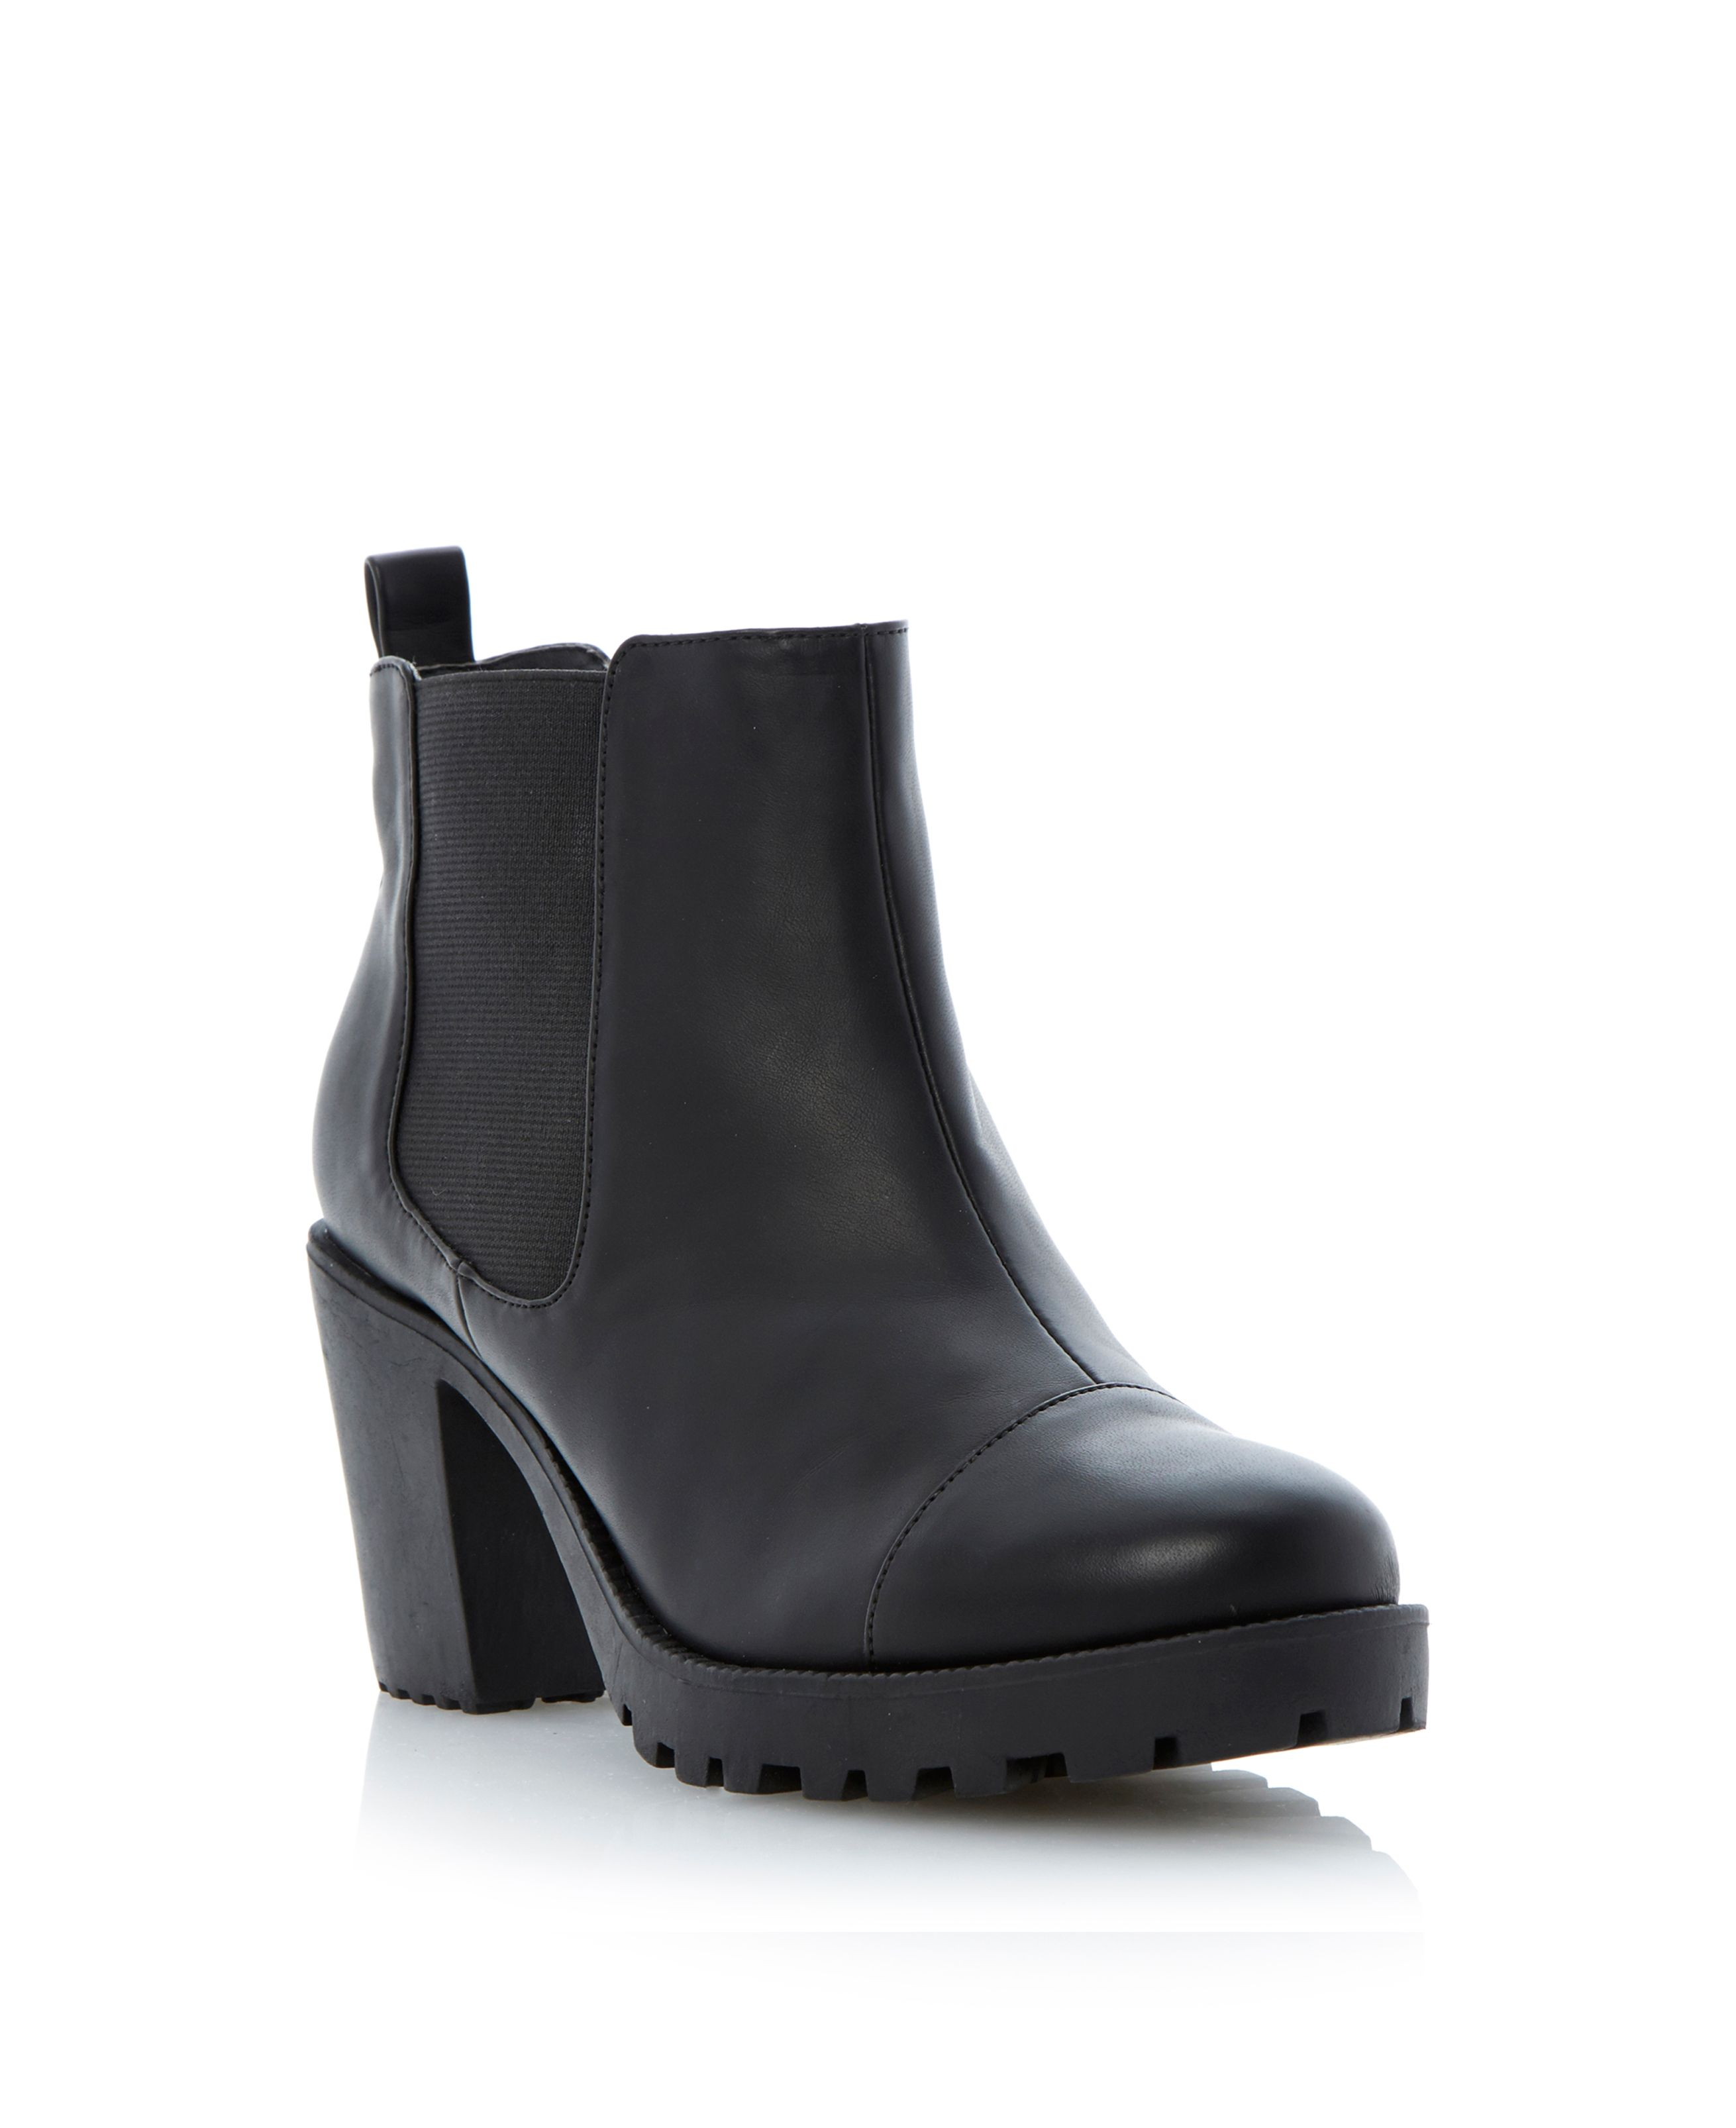 Perriee cleated sole chelsea boots